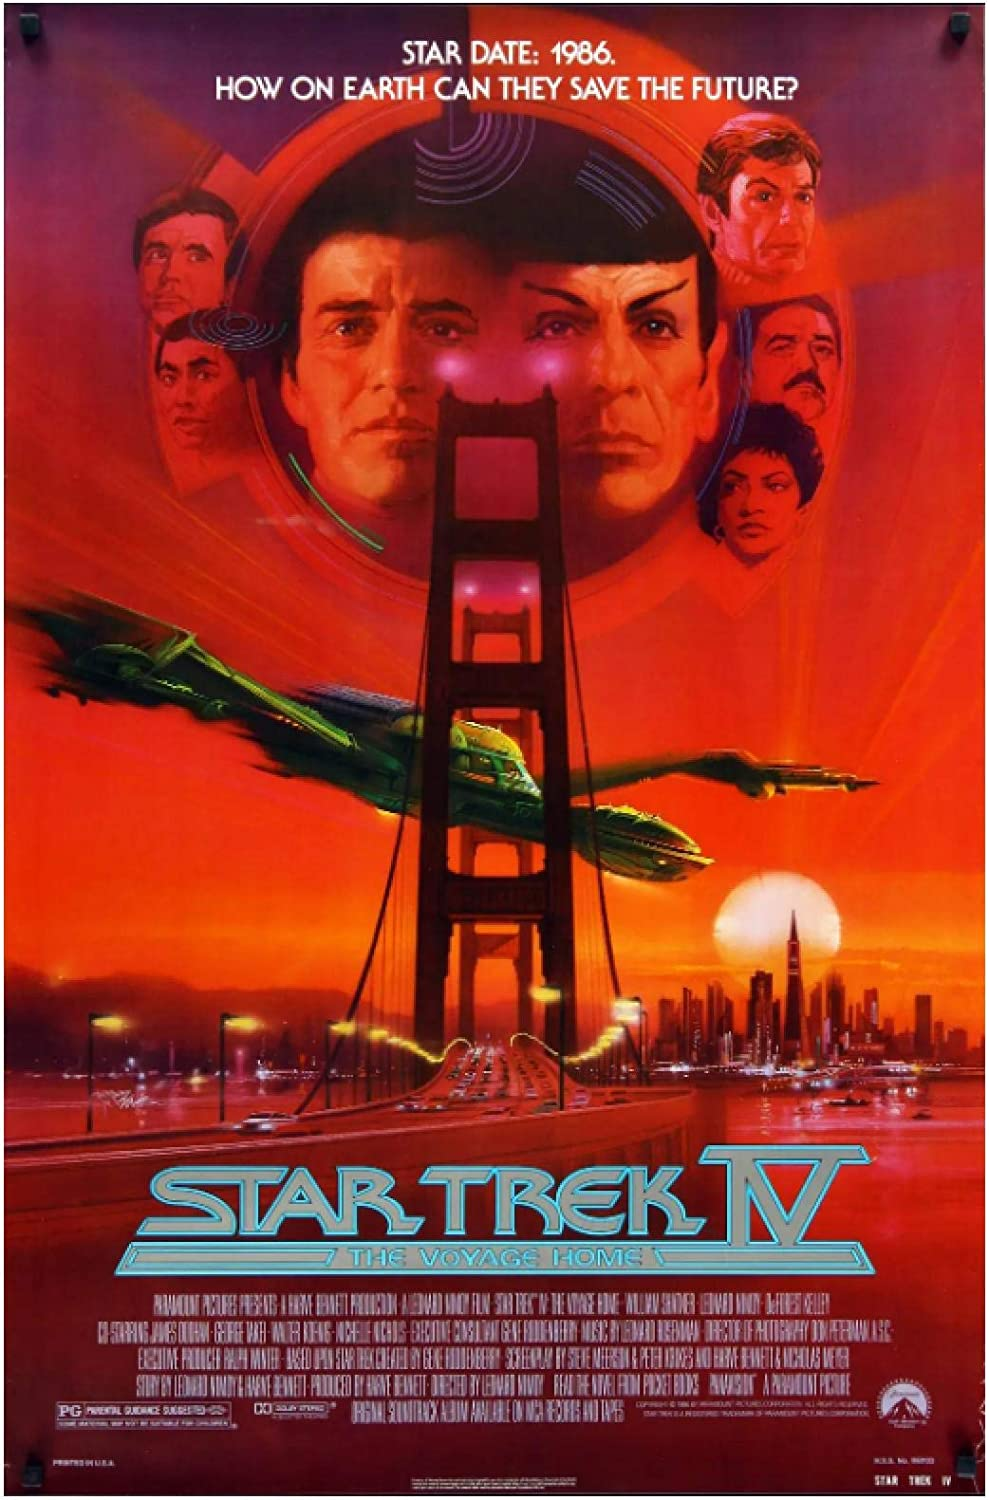 Sanwooden Star Trek IV: The Voyage Home Posters and Prints Movie Poster Art Stills Decoration Living Room Bedroom Canvas Print on The Wall -20x30 inch No Frame